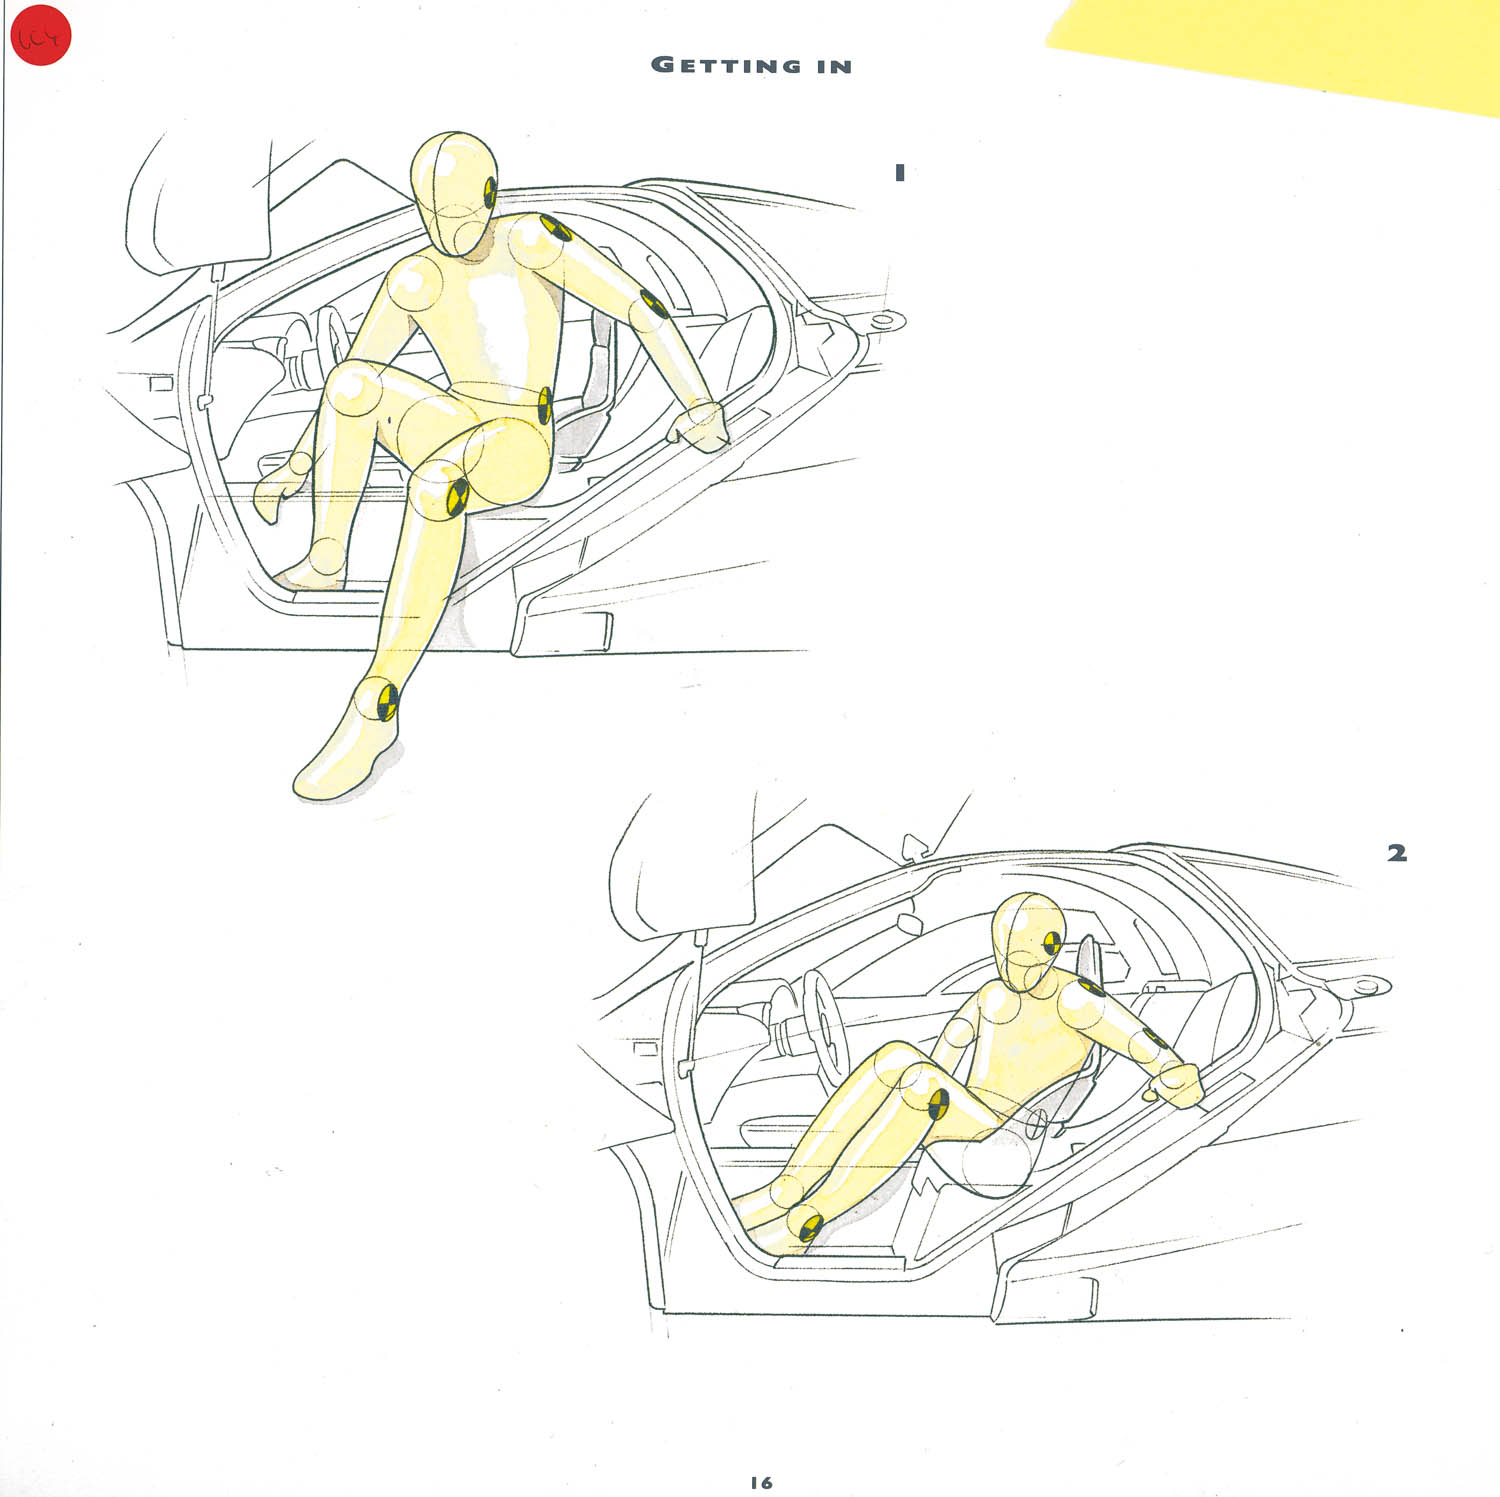 sketch of how to get into a McLaren F1